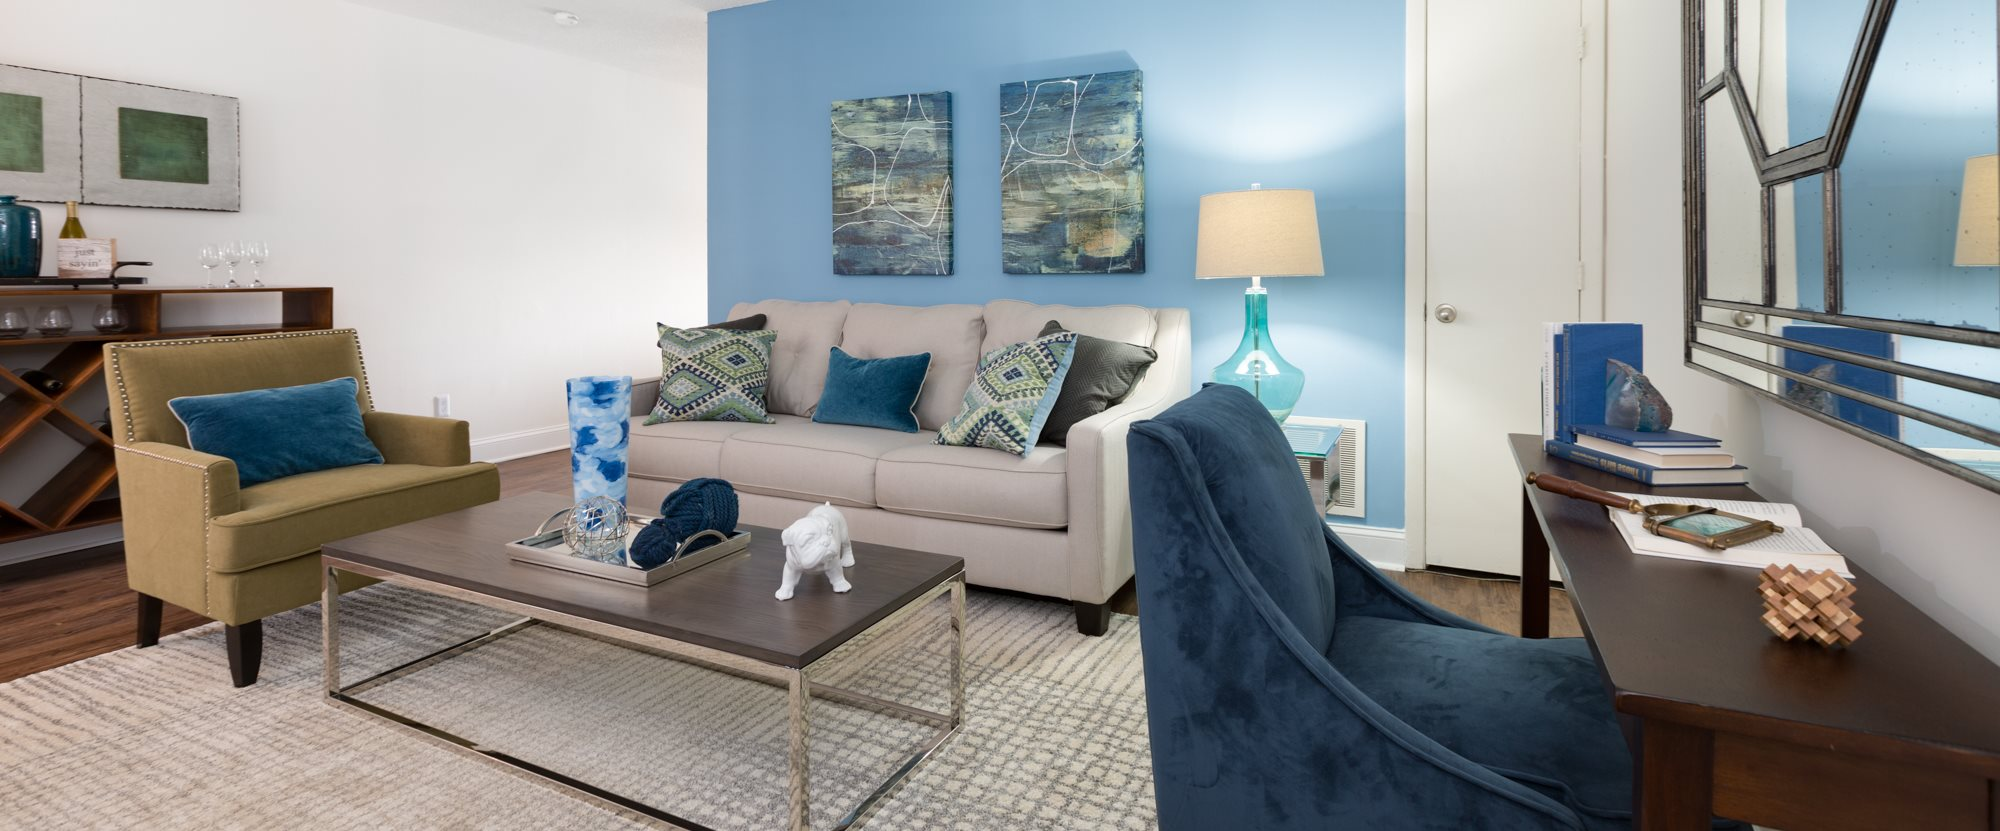 Living room interior with light blue accent wall, fully decorated with a rug, two accent chairs, a light gray sofa, and a wooden desk